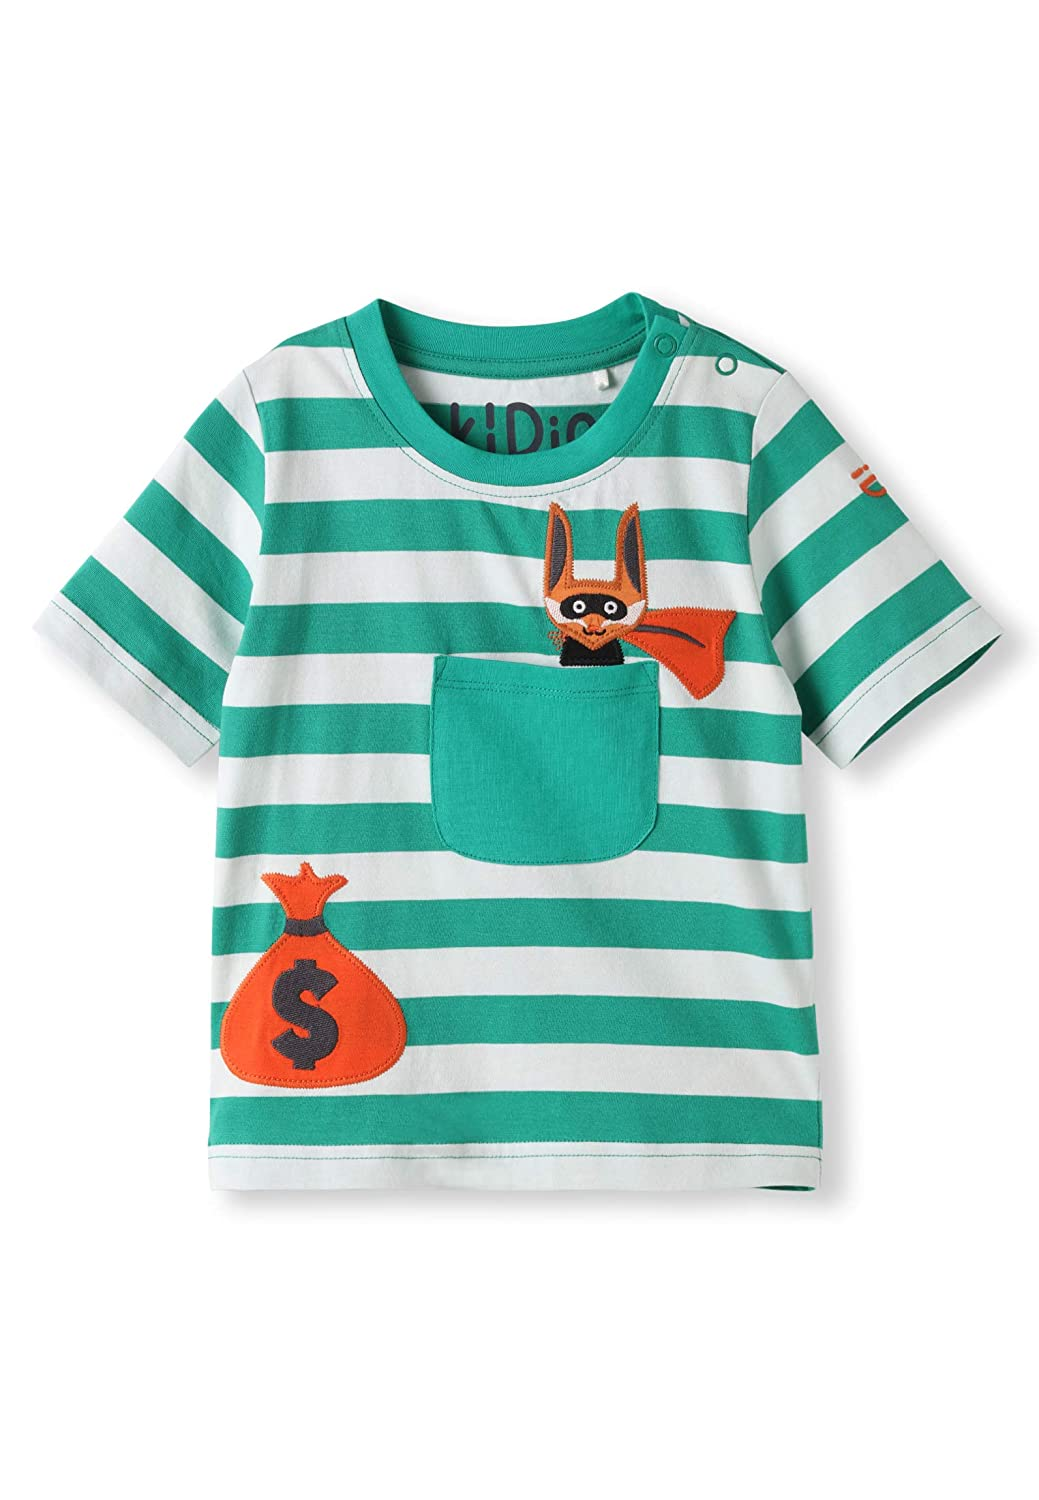 0-4 Years Boy Girl Summer Short Sleeve Tee Baby Infant Toddler T-Shirt Applique kIDio Organic Cotton